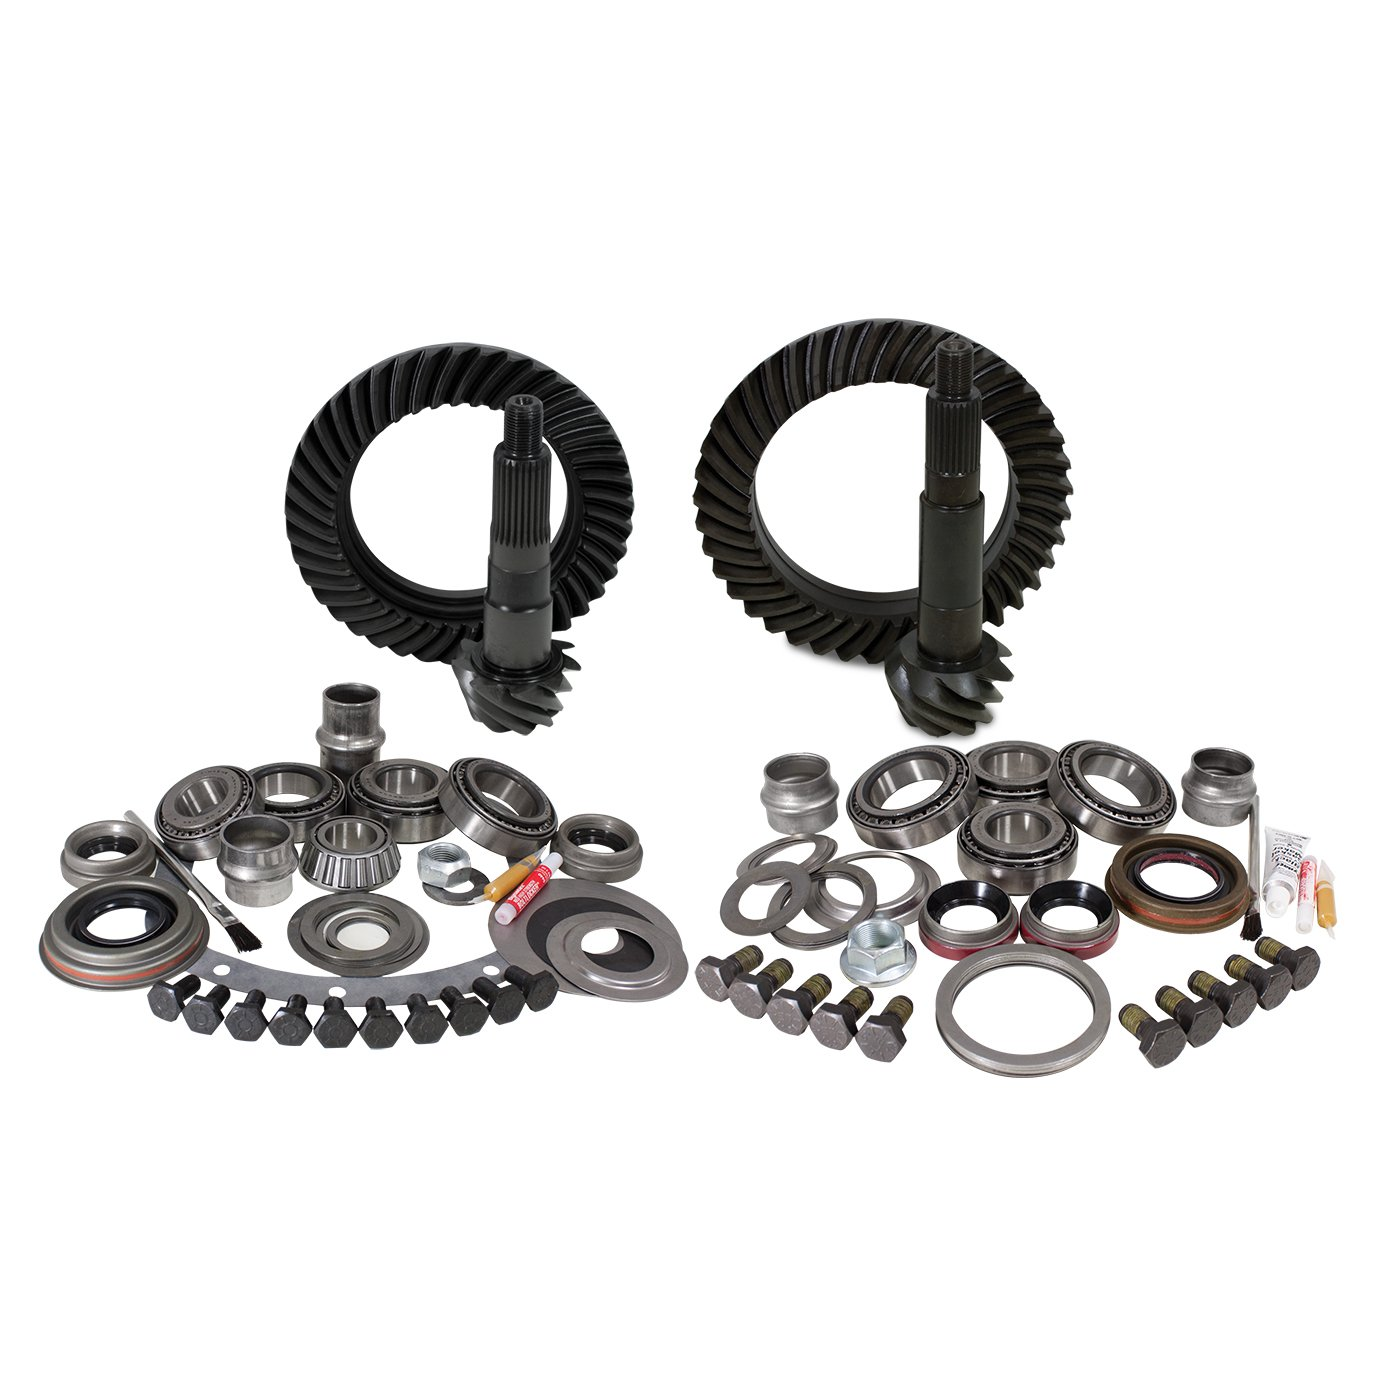 Yukon Gear YGK002 Gear and Install Kit Package (for Jeep XJ/YJ Dana 30 front Model 35 rear, 4.88 Ratio)